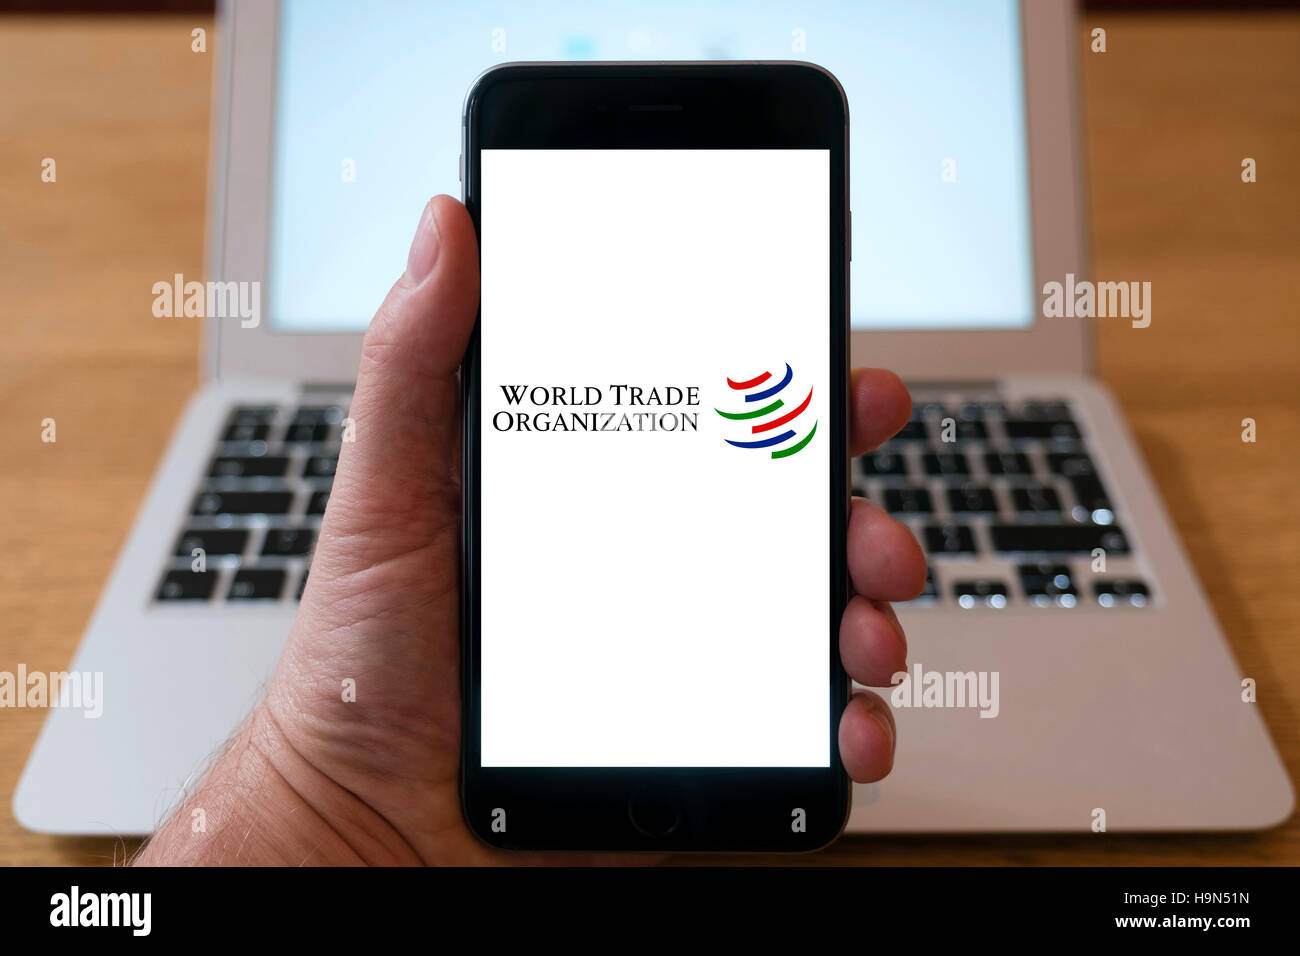 World Trade Organisation home page on iPhone smart phone mobile phone Stock Photo